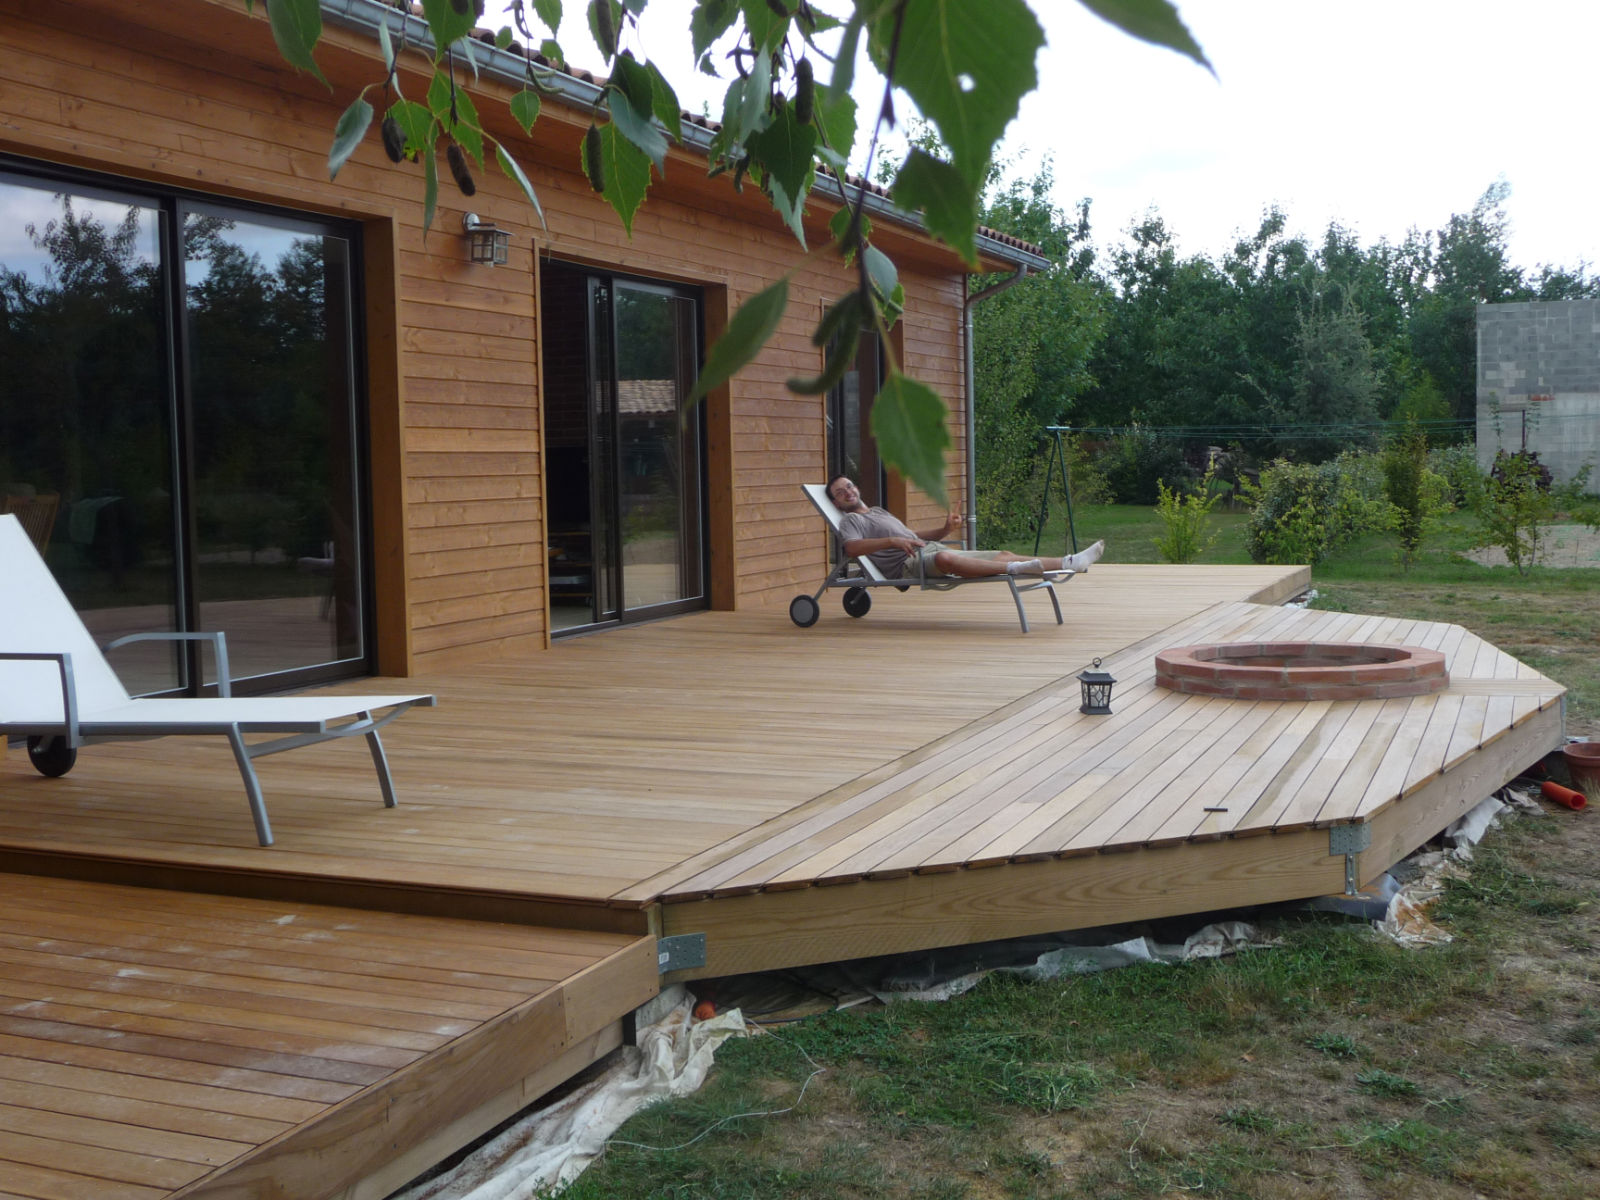 Construction d 39 une terrasse en bois photos d 39 ensemble - Construction d une terrasse ...